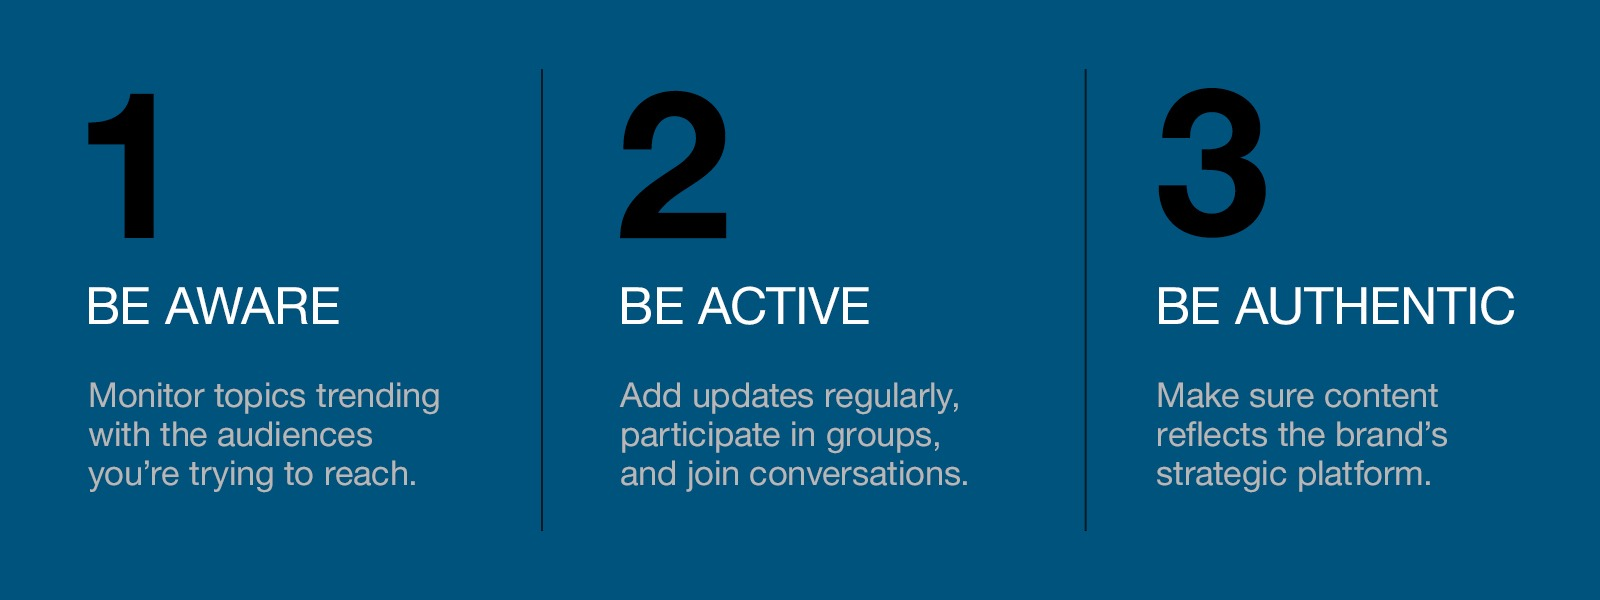 1. Be aware, 2. Be active, 3. Be authentic